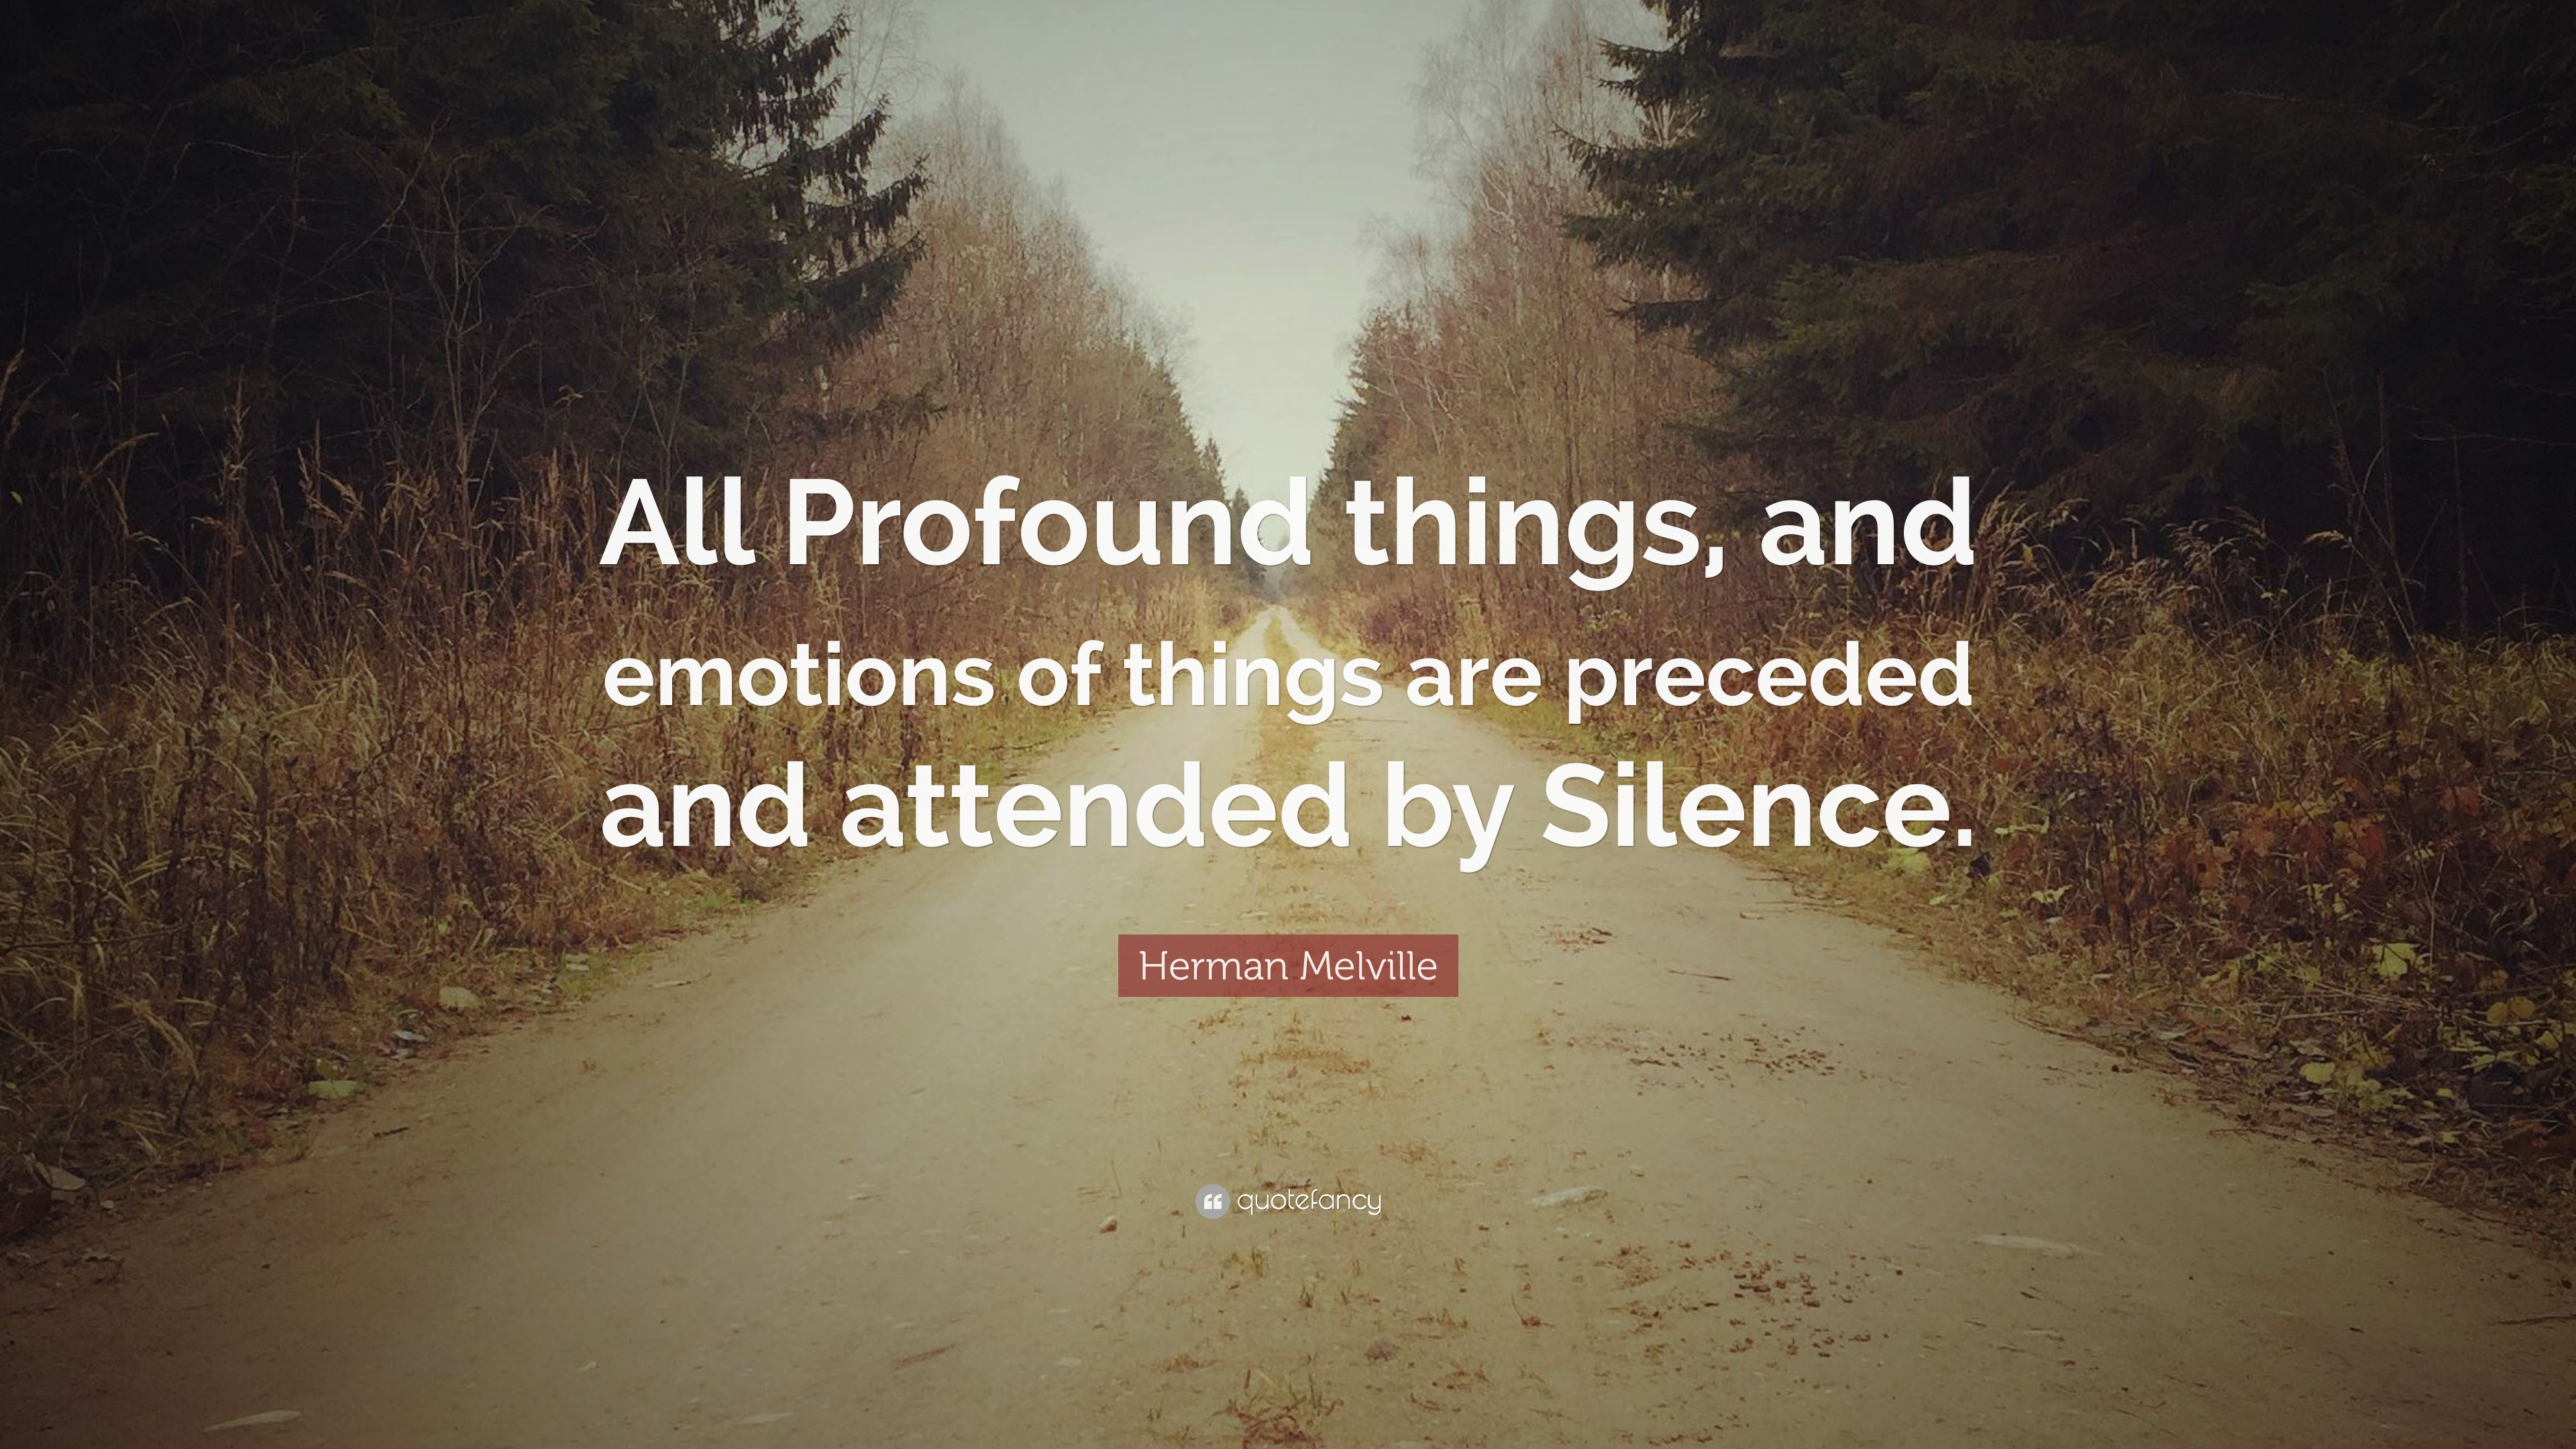 """Herman Melville Quote: """"All Profound things, and emotions of things are  preceded and attended by Silence."""" (7 wallpapers) - Quotefancy"""